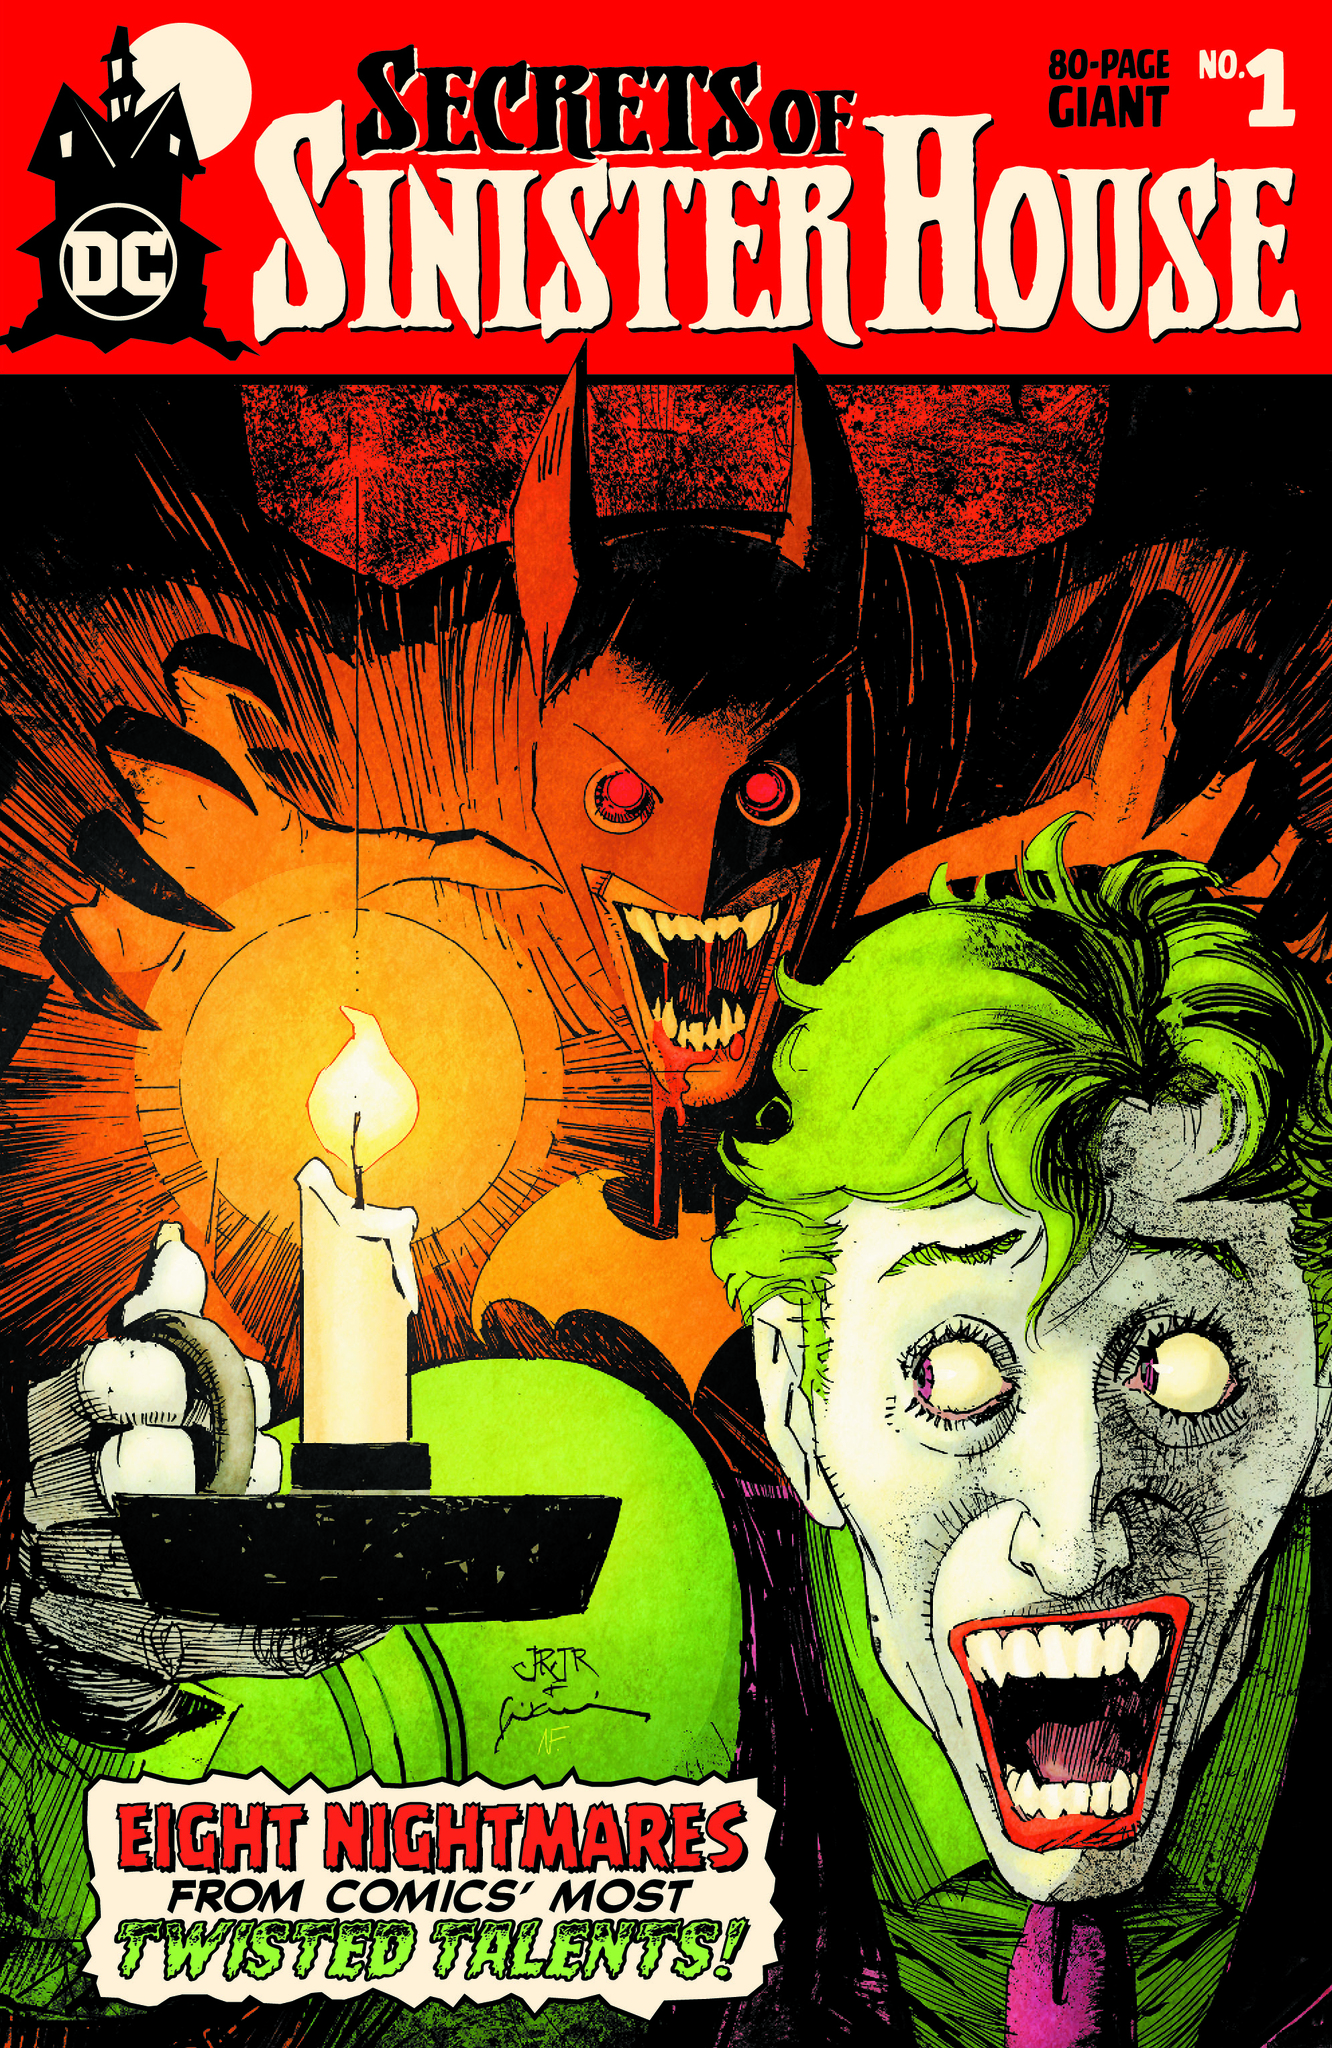 Secrets of Sinister House #1 review: one hell of an anthology from DC